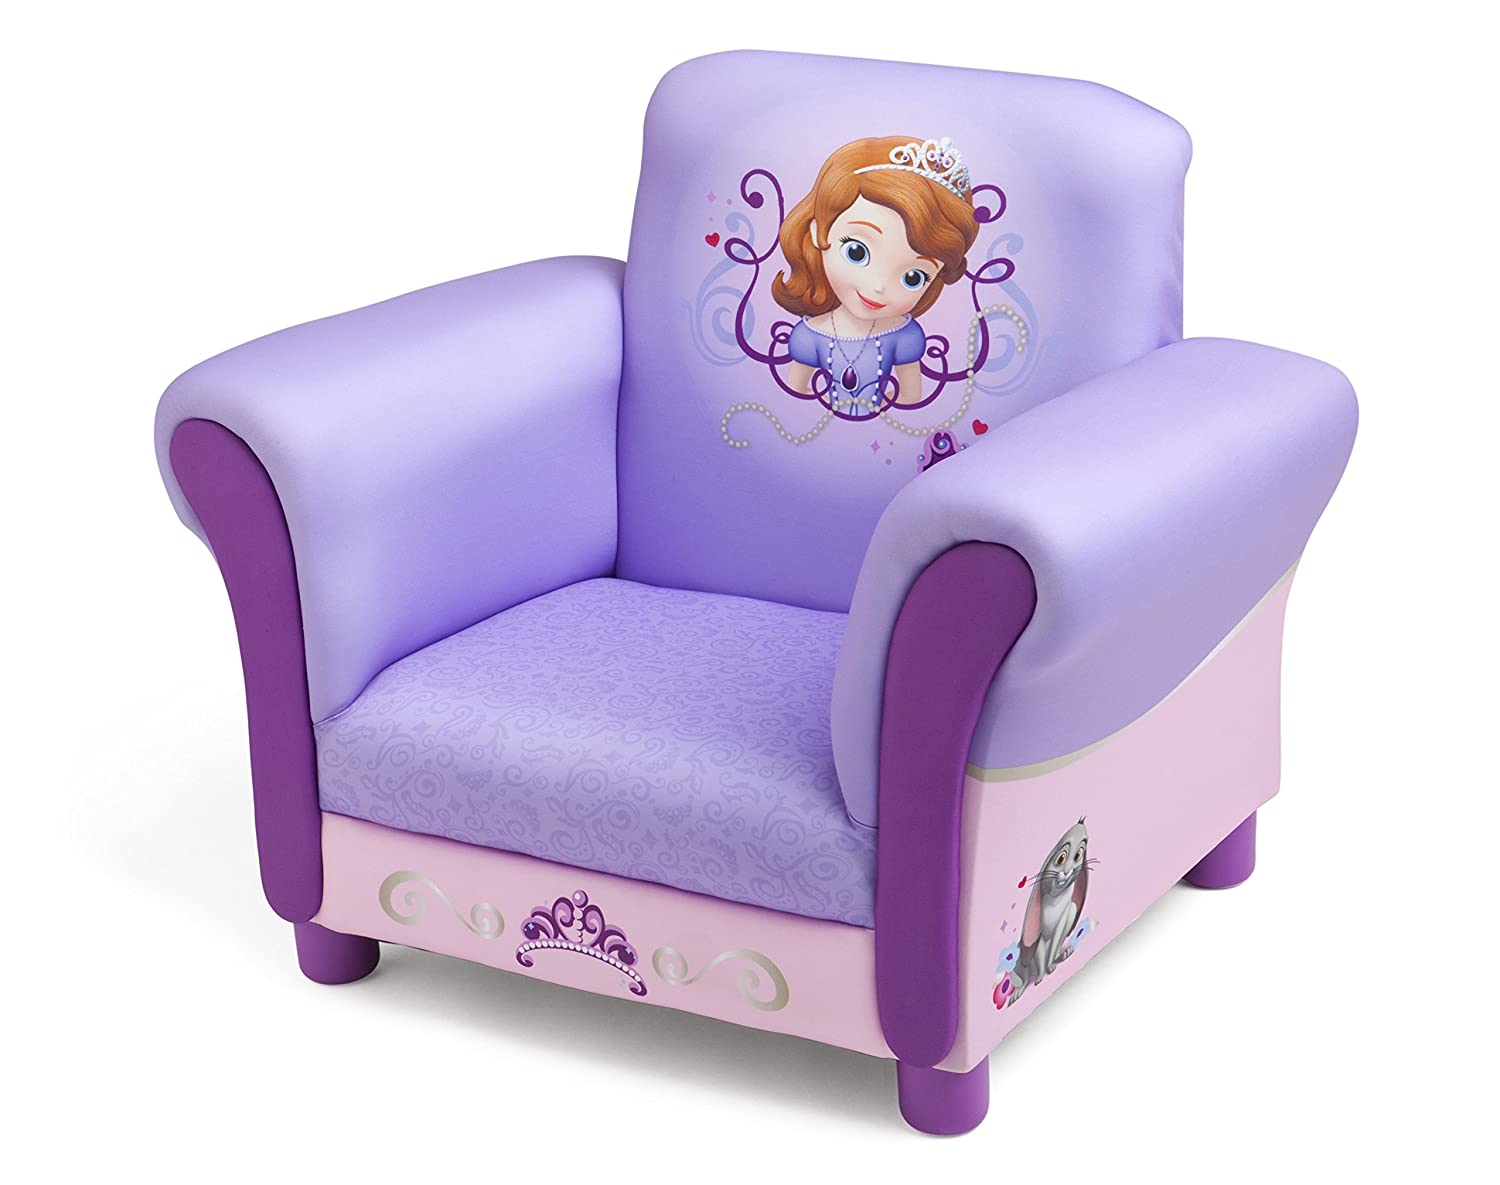 Amazon.com: Disney Sofia the First Upholstered Chair by Delta ...